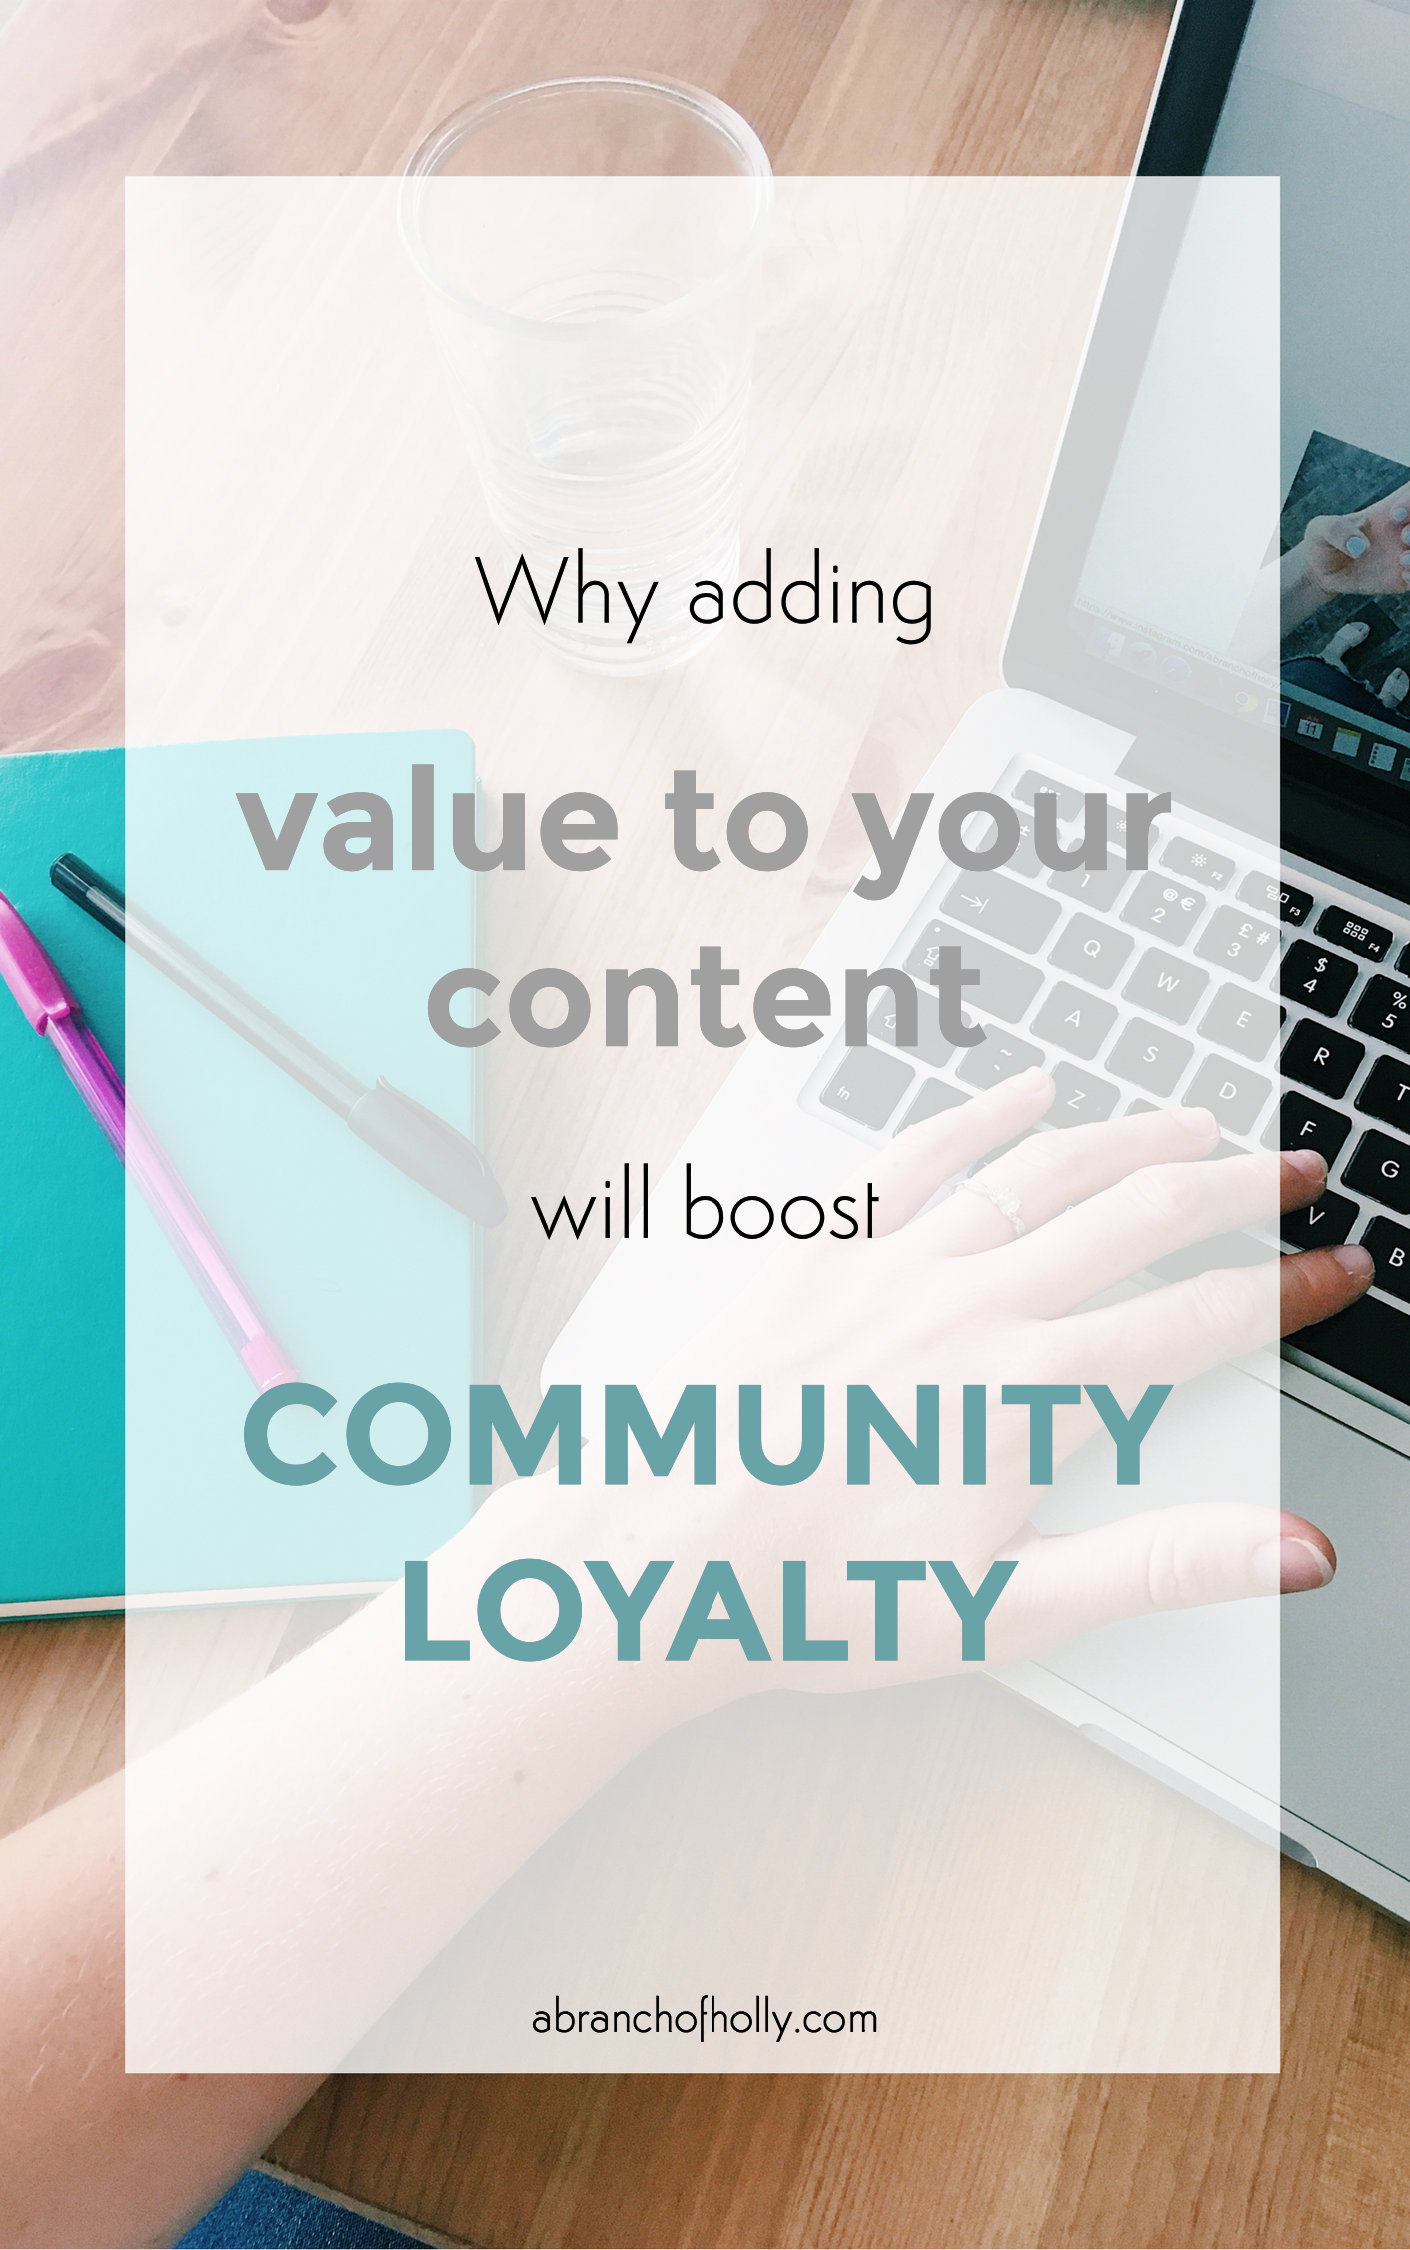 why adding value to your content will boost community loyalty